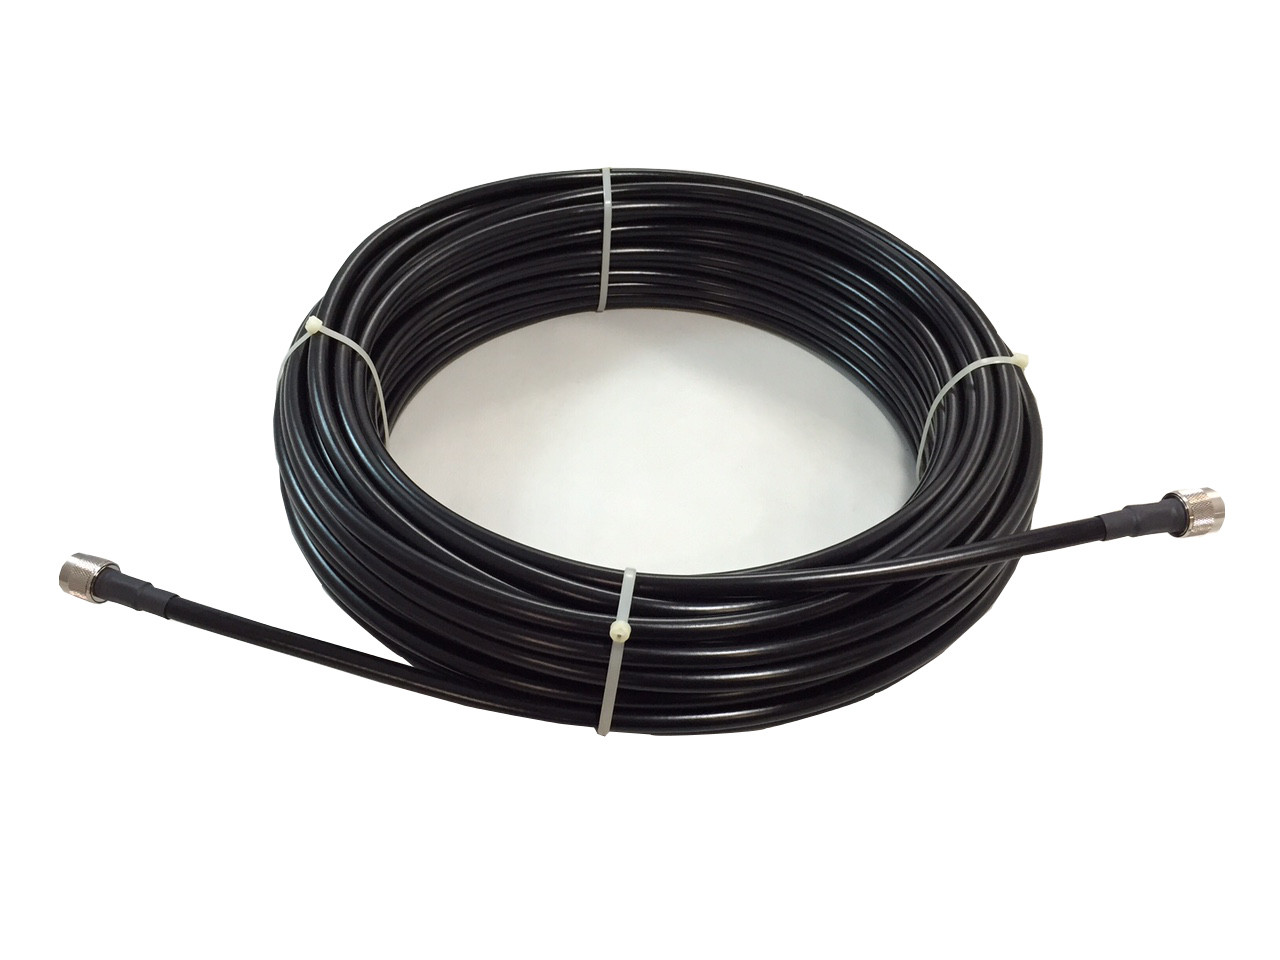 Example of custom cable with terminated ends